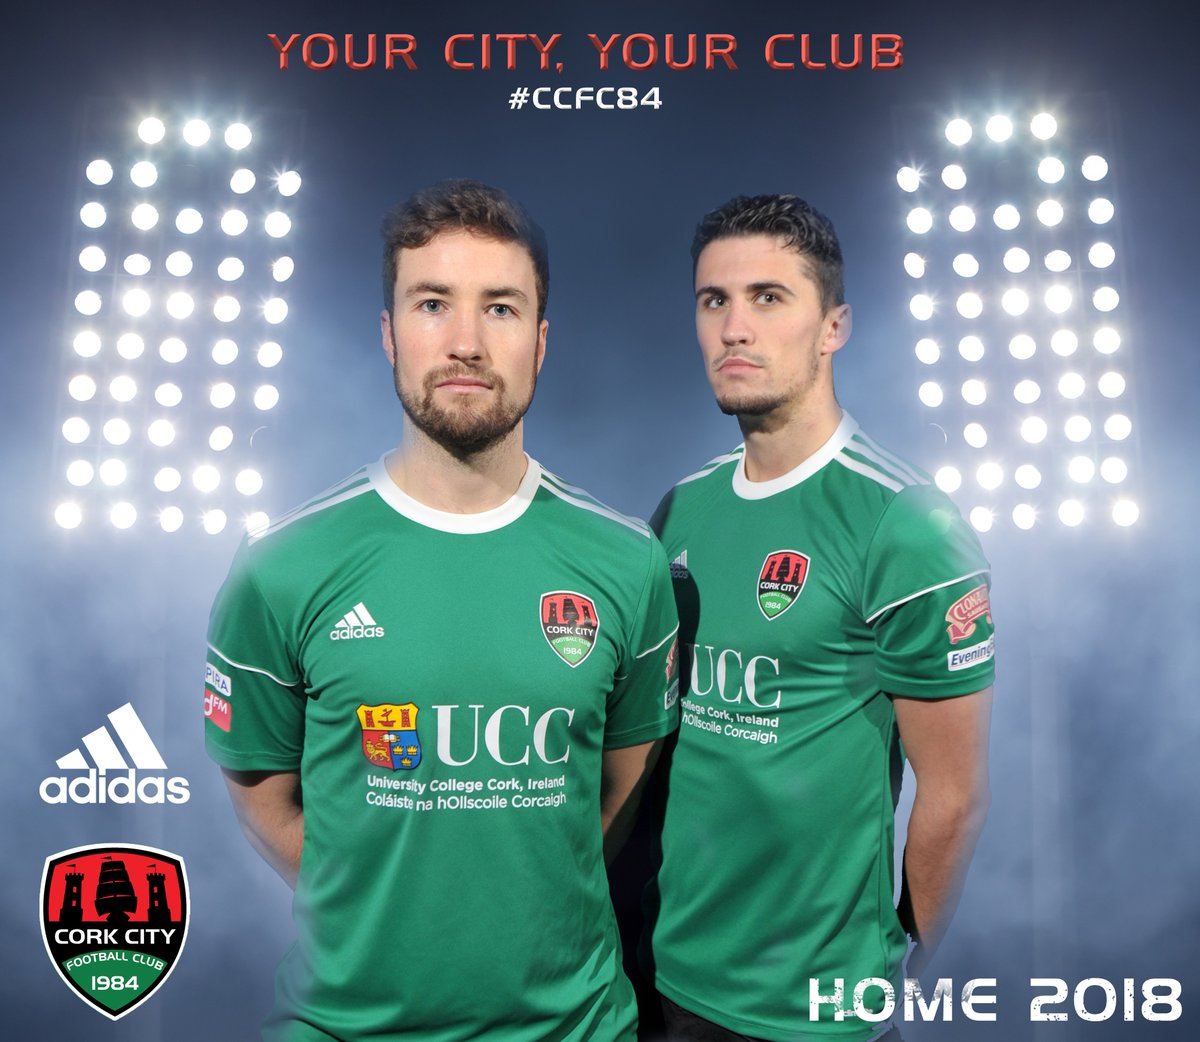 d37c6322f7a Cork City FC on Twitter